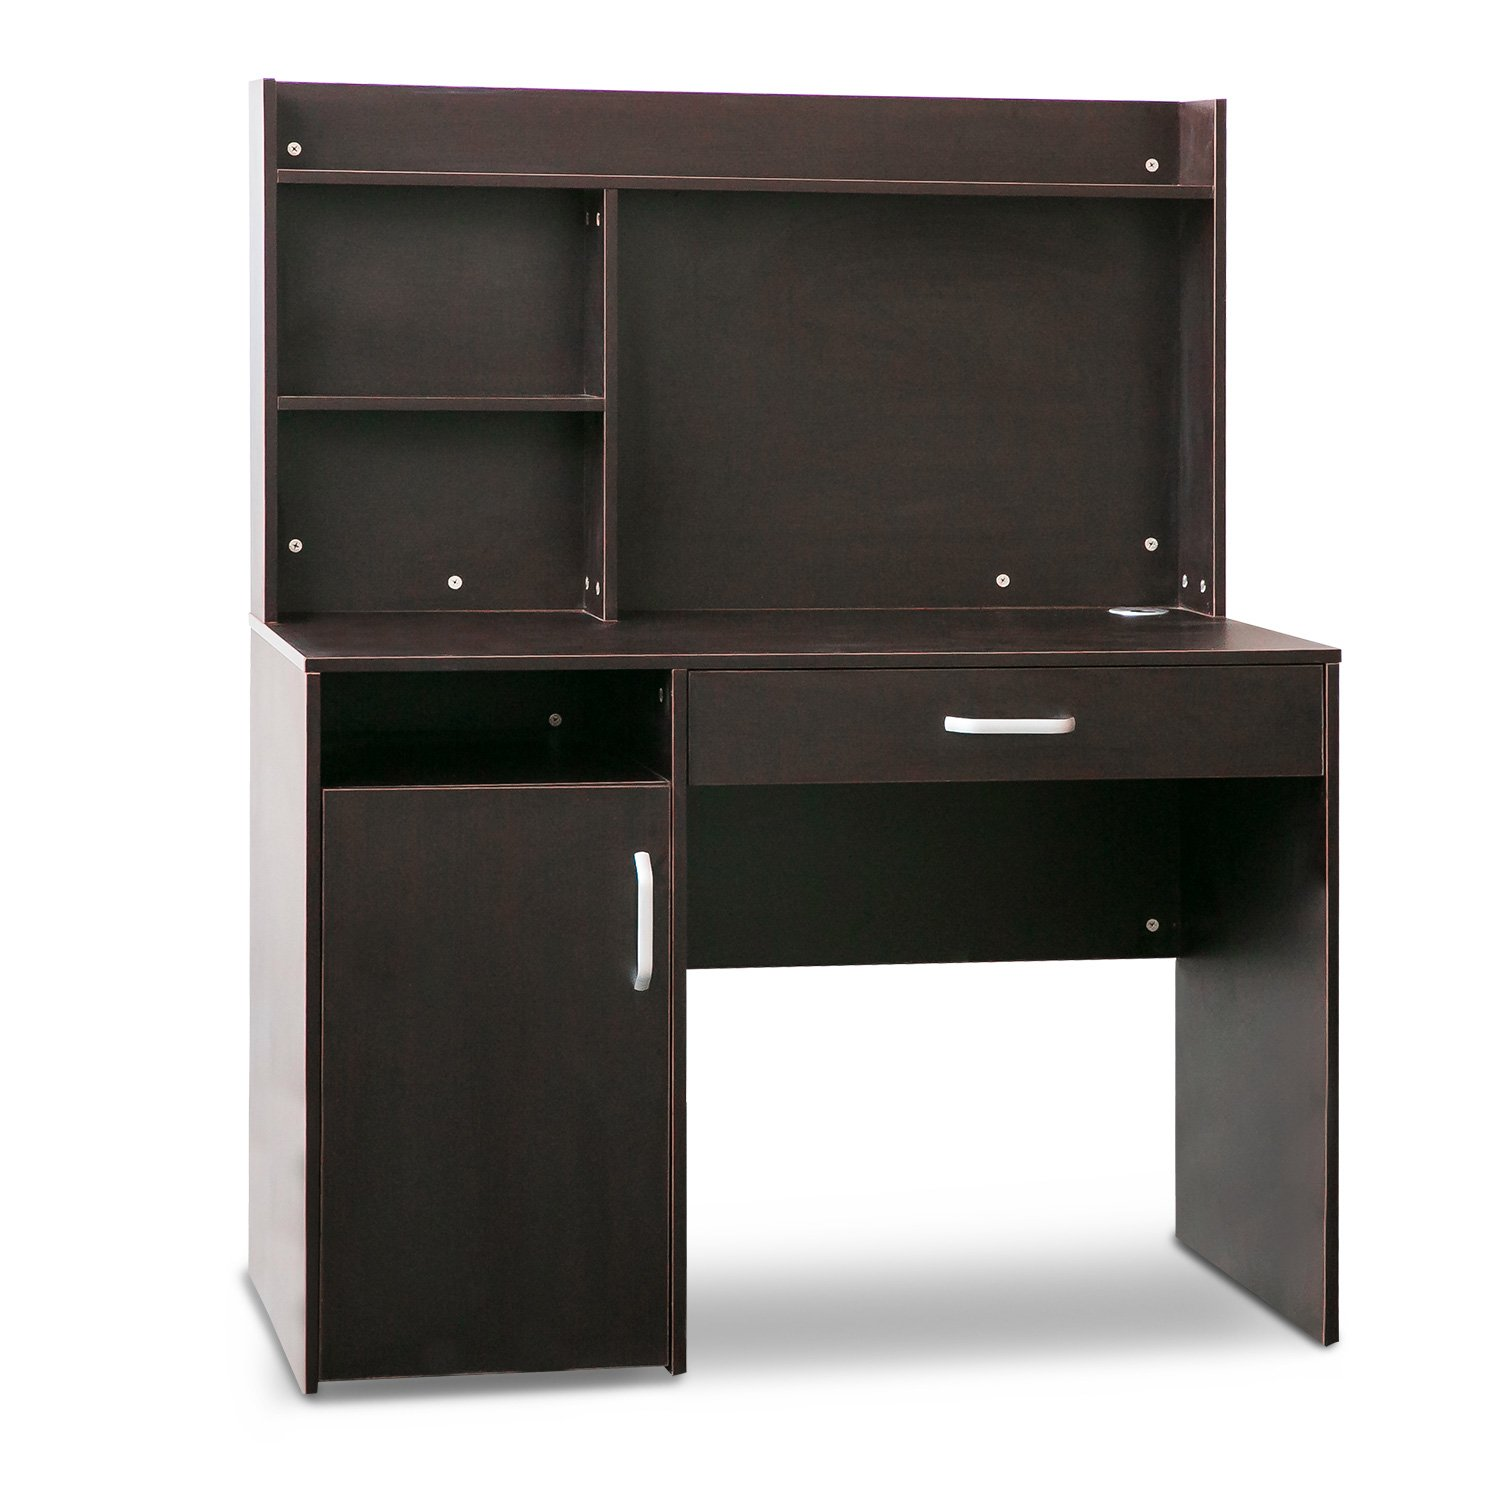 Merax Home Office Computer Desk with Hutch and Bookshelves (Dark Brown)